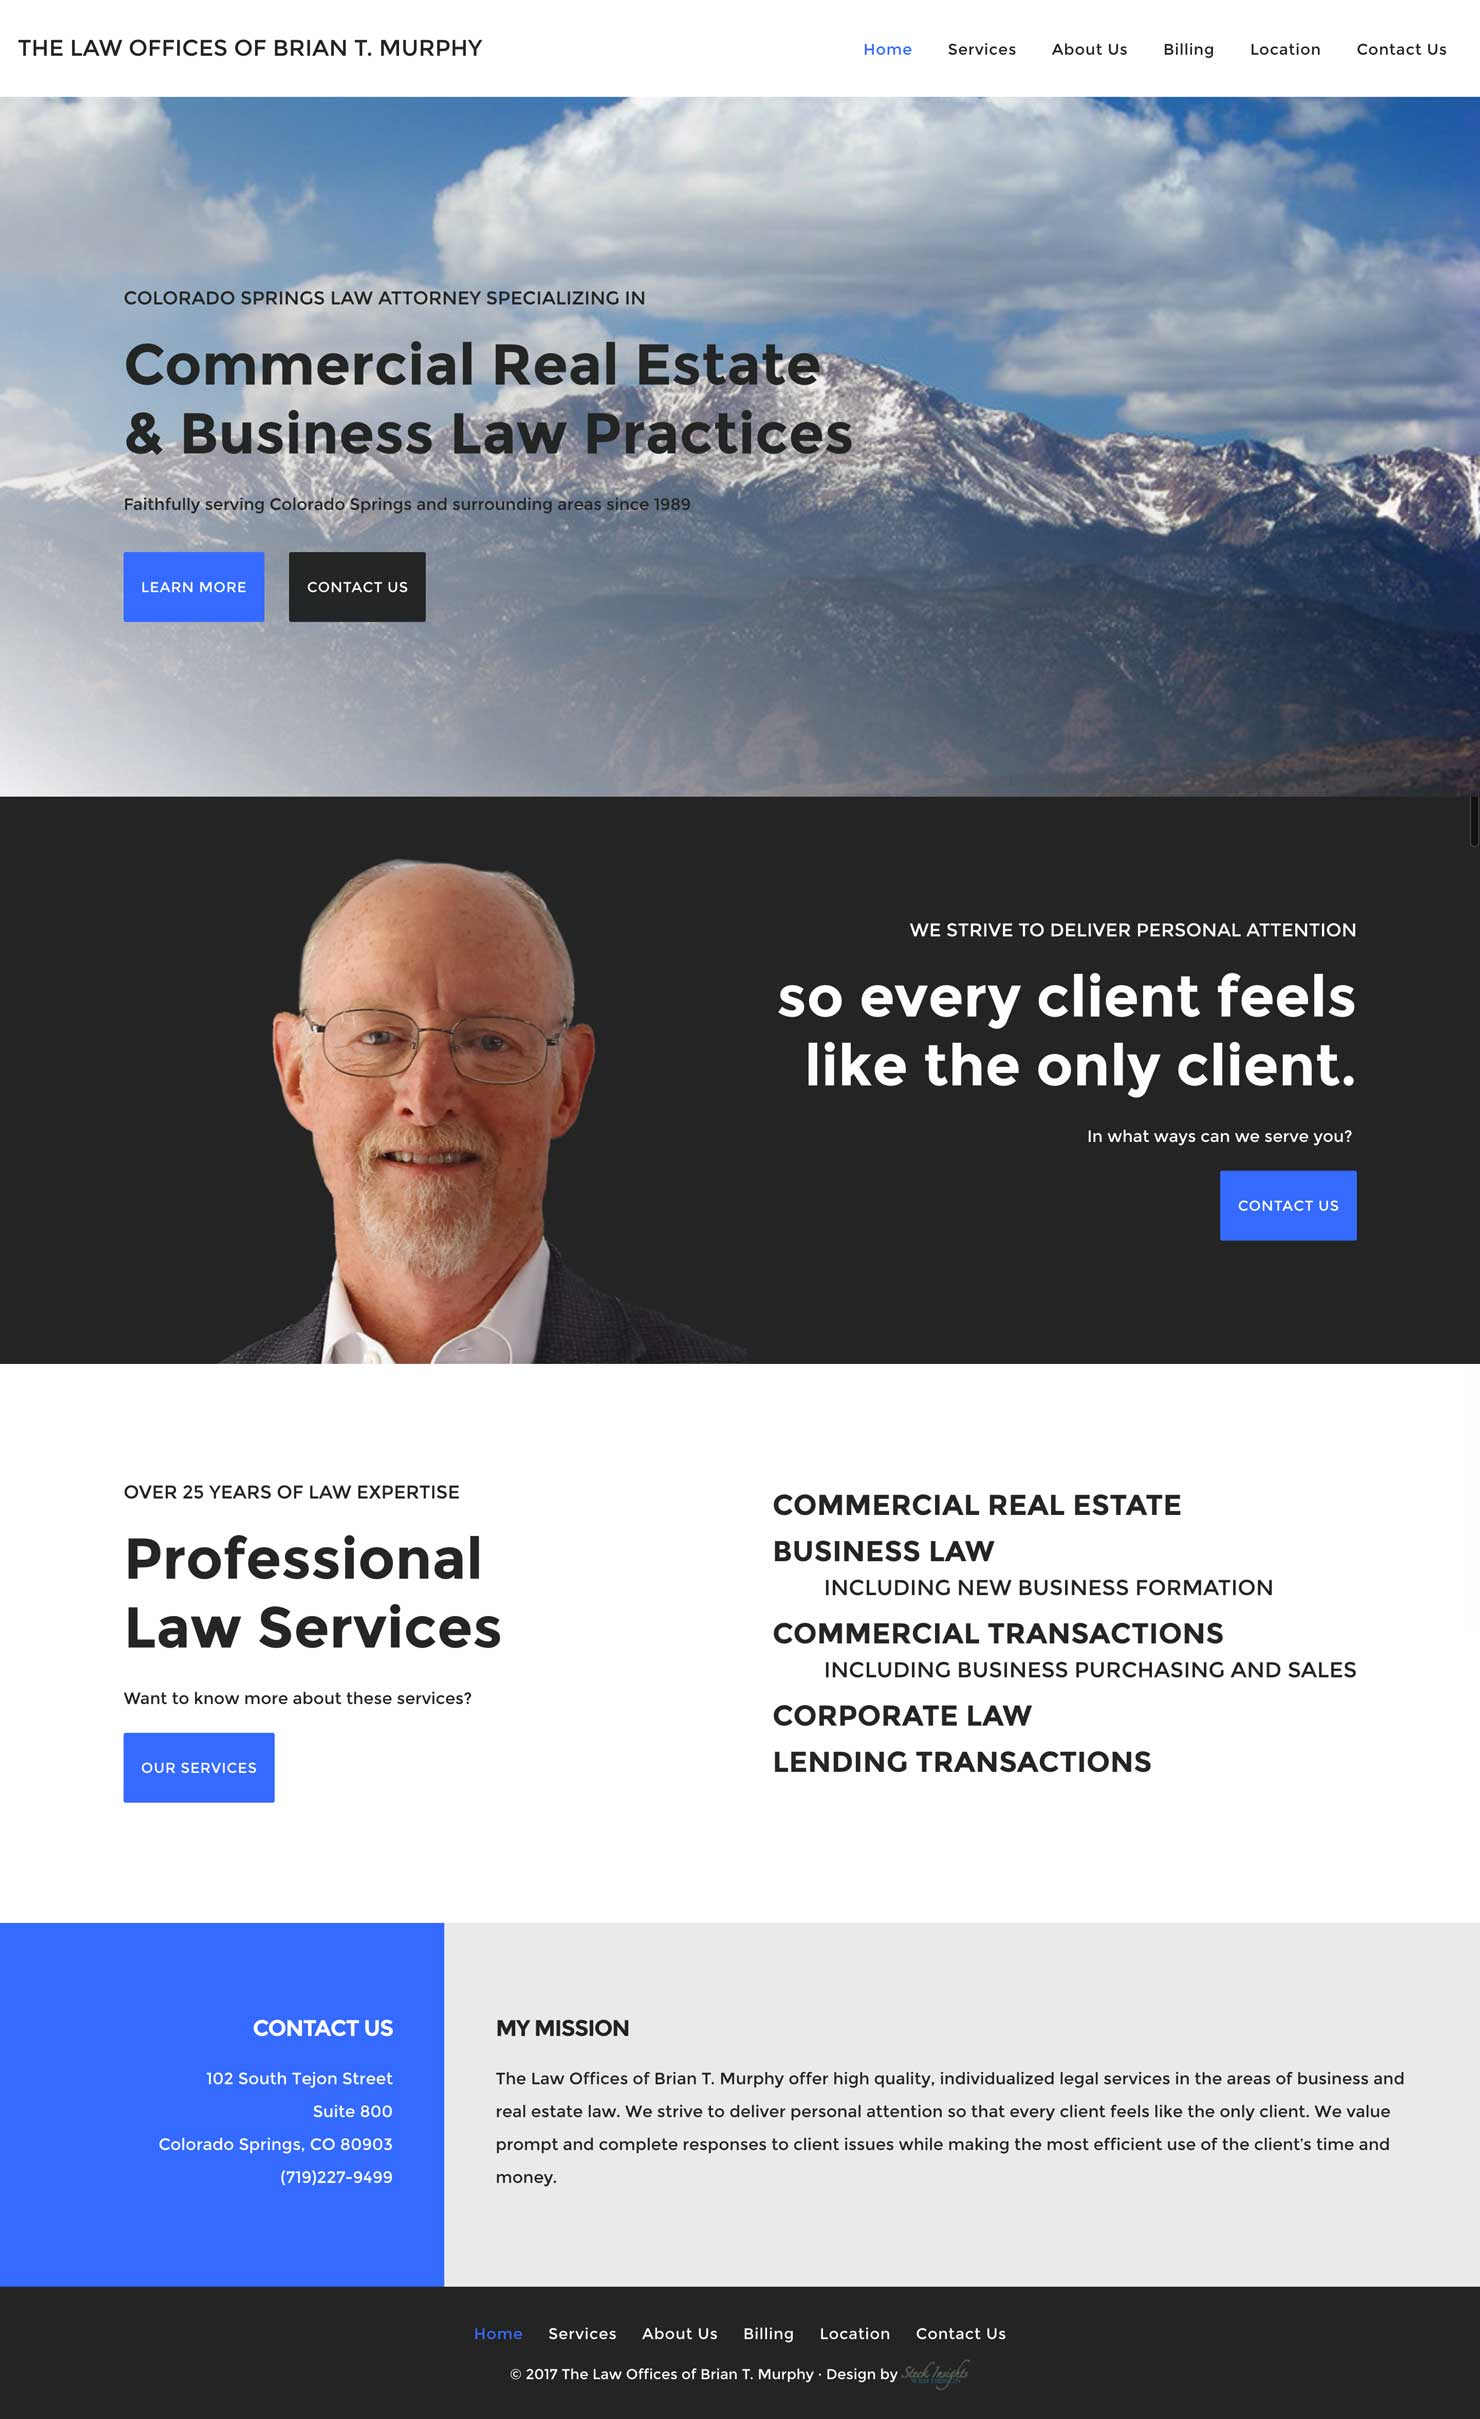 brian-murphy-law Archives | Steck Insights Web Design